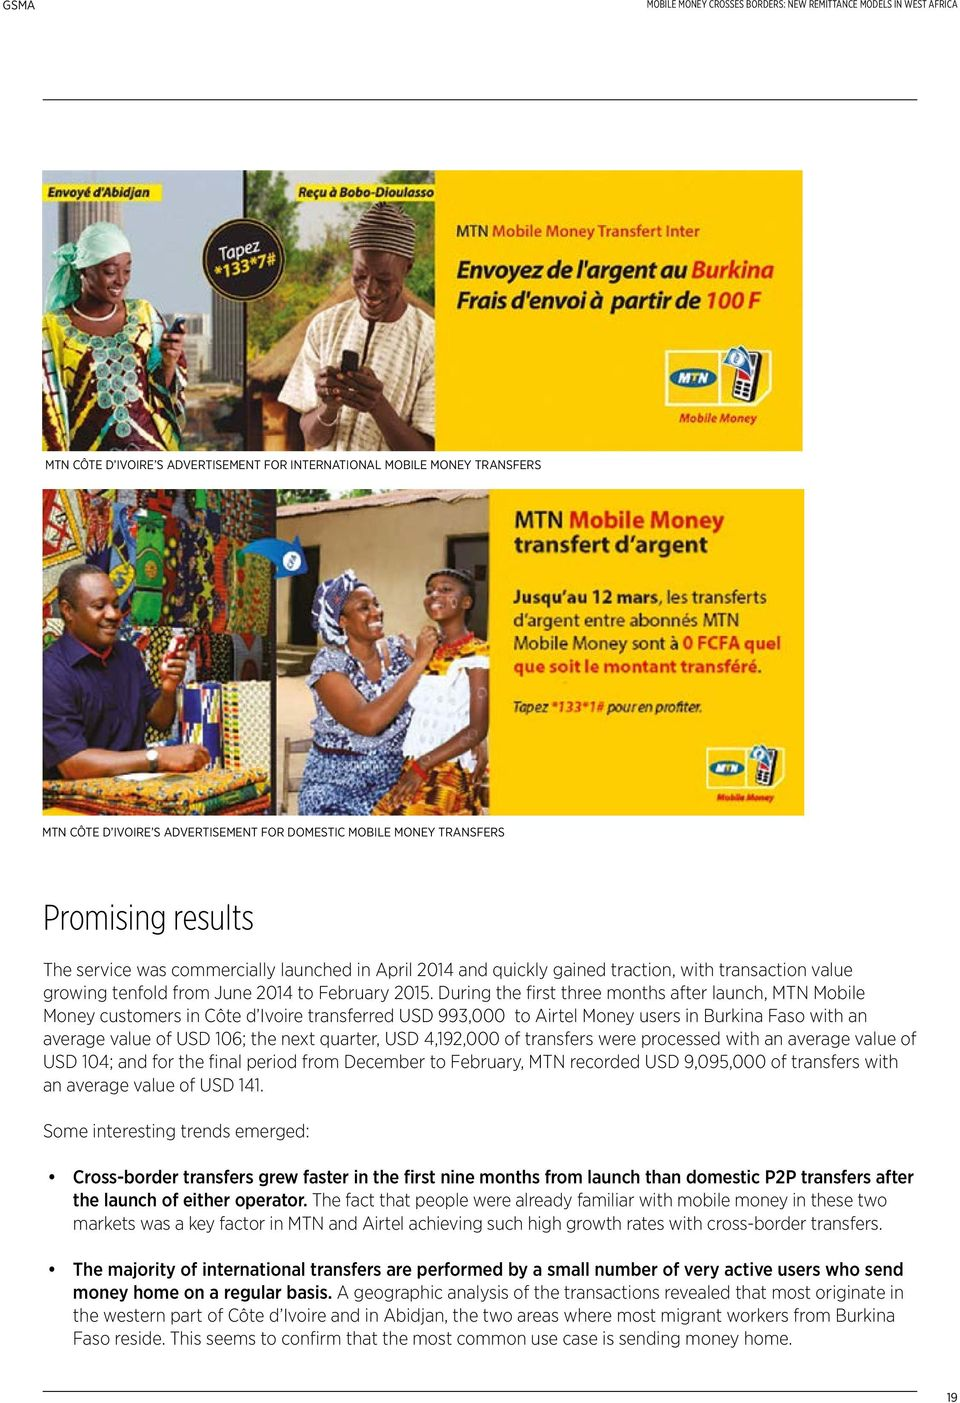 During the first three months after launch, MTN Mobile Money customers in Côte d Ivoire transferred USD 993,000 to Airtel Money users in Burkina Faso with an average value of USD 106; the next